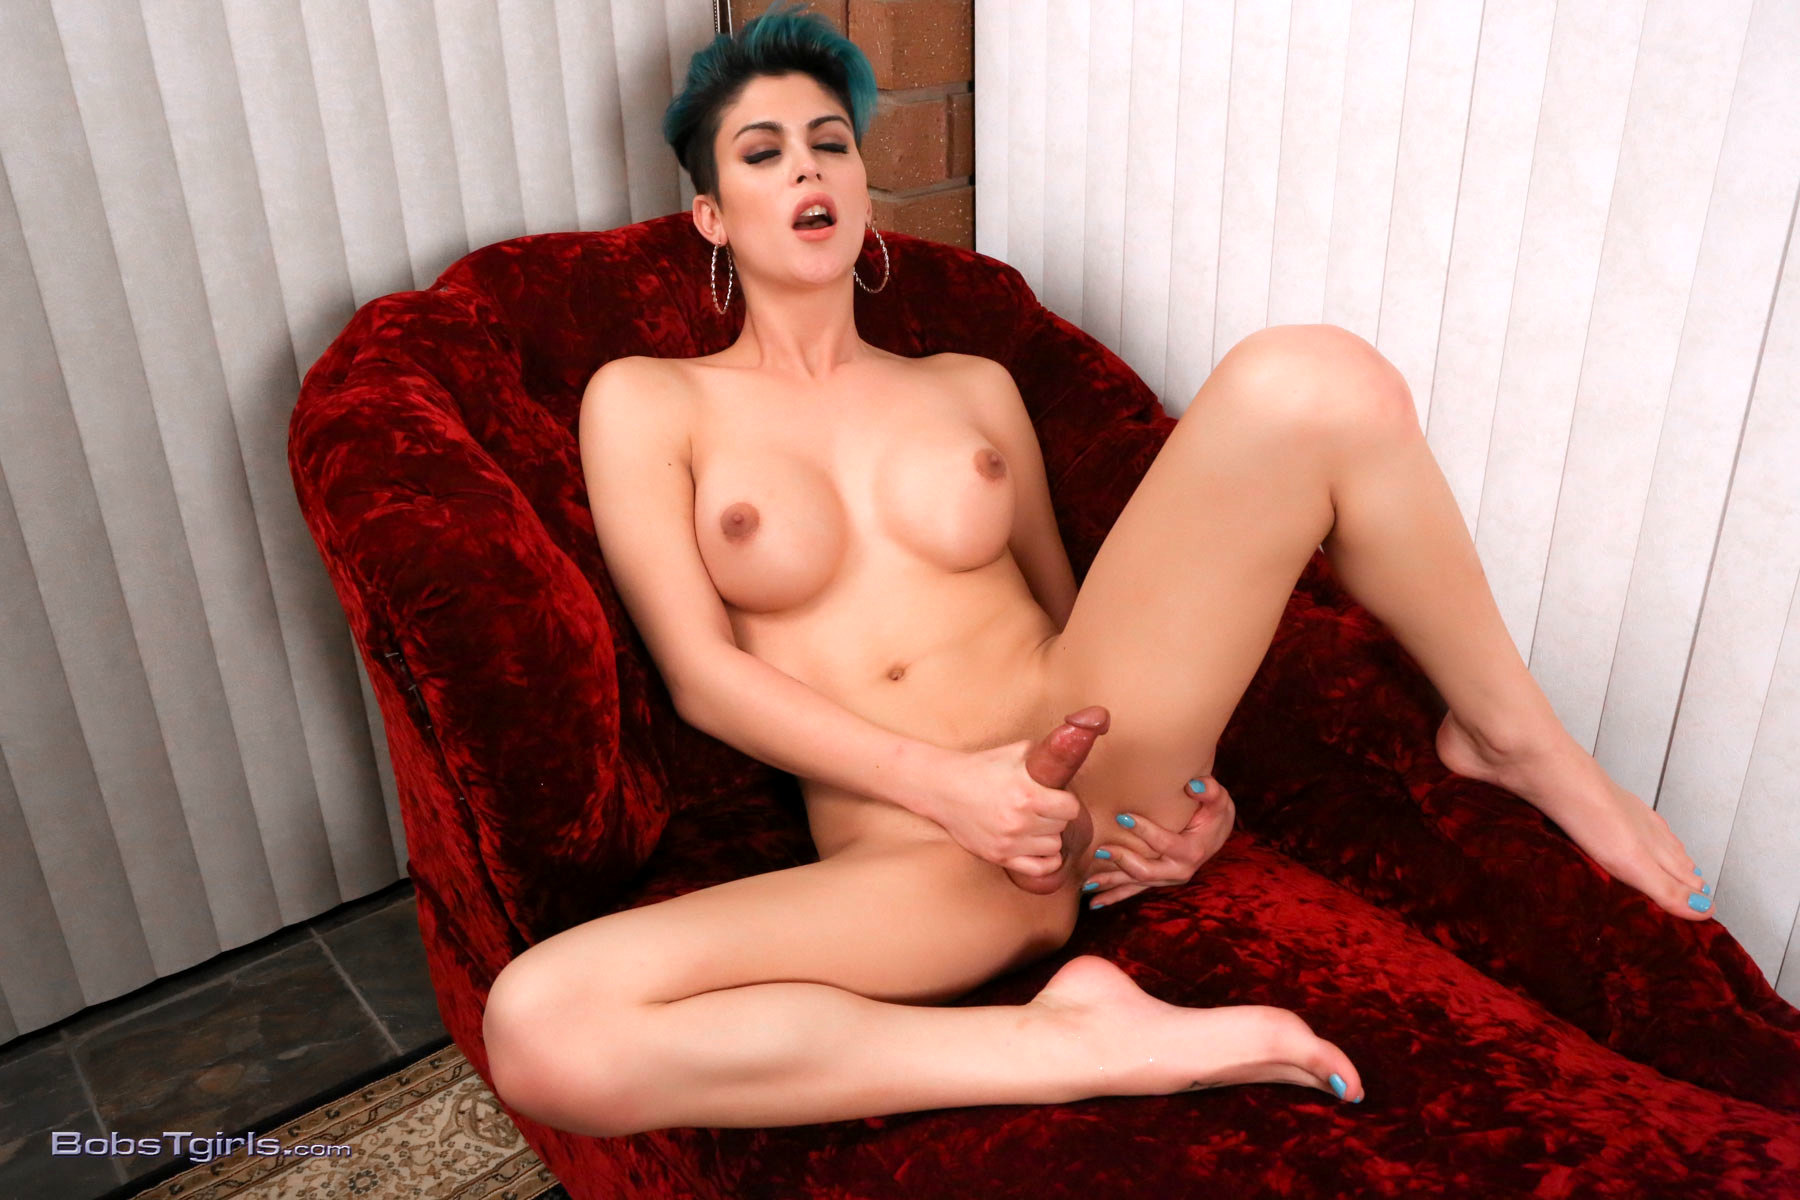 Enormous Penis Domino Spreads & Rubs